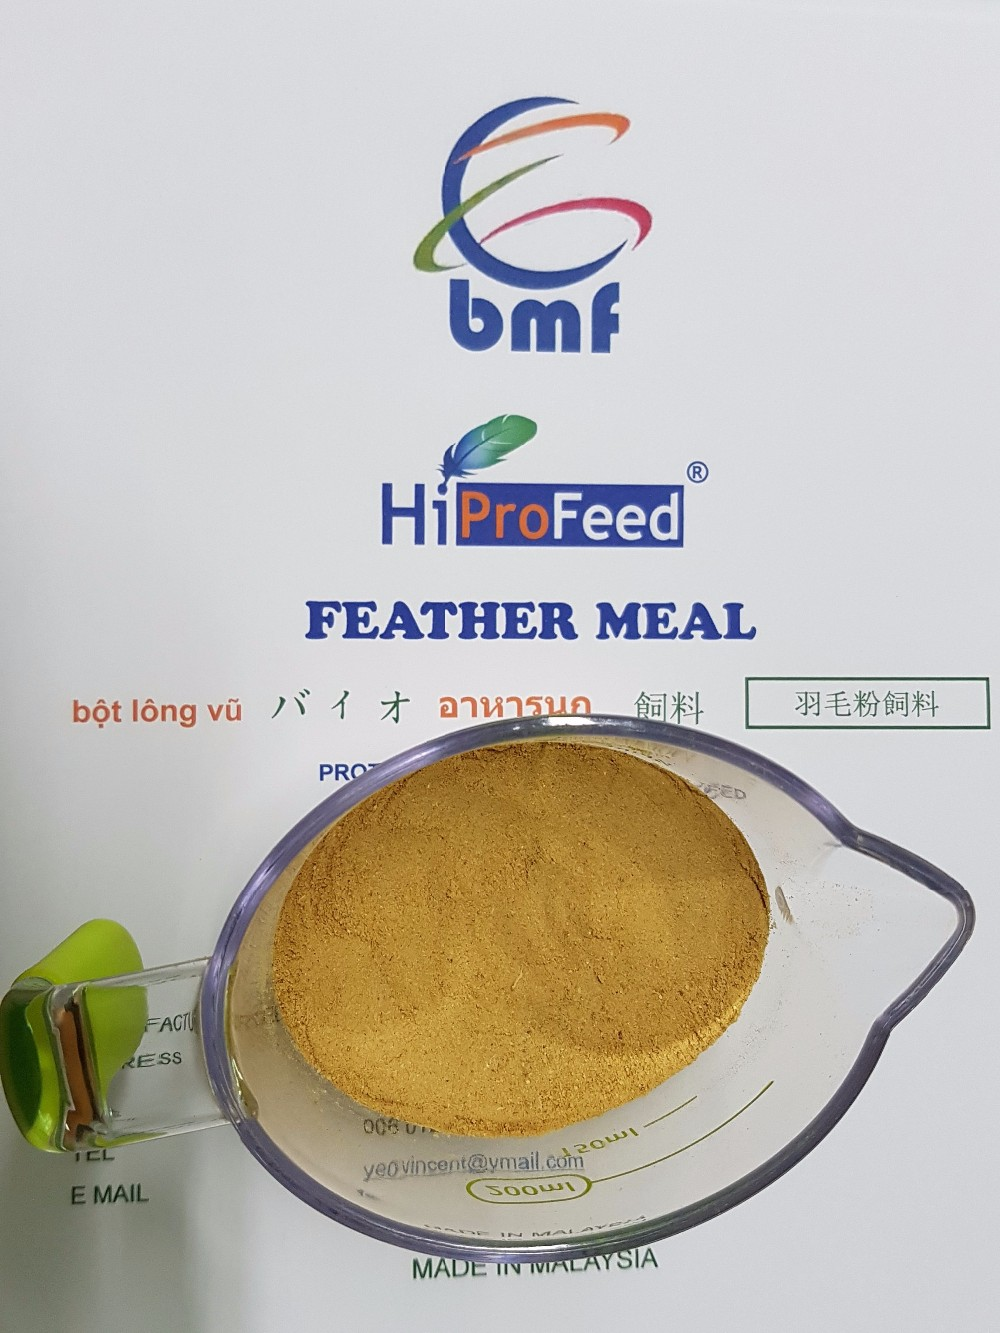 Feather Meal for Animal Feed, Chicken Meal, Animal Feed